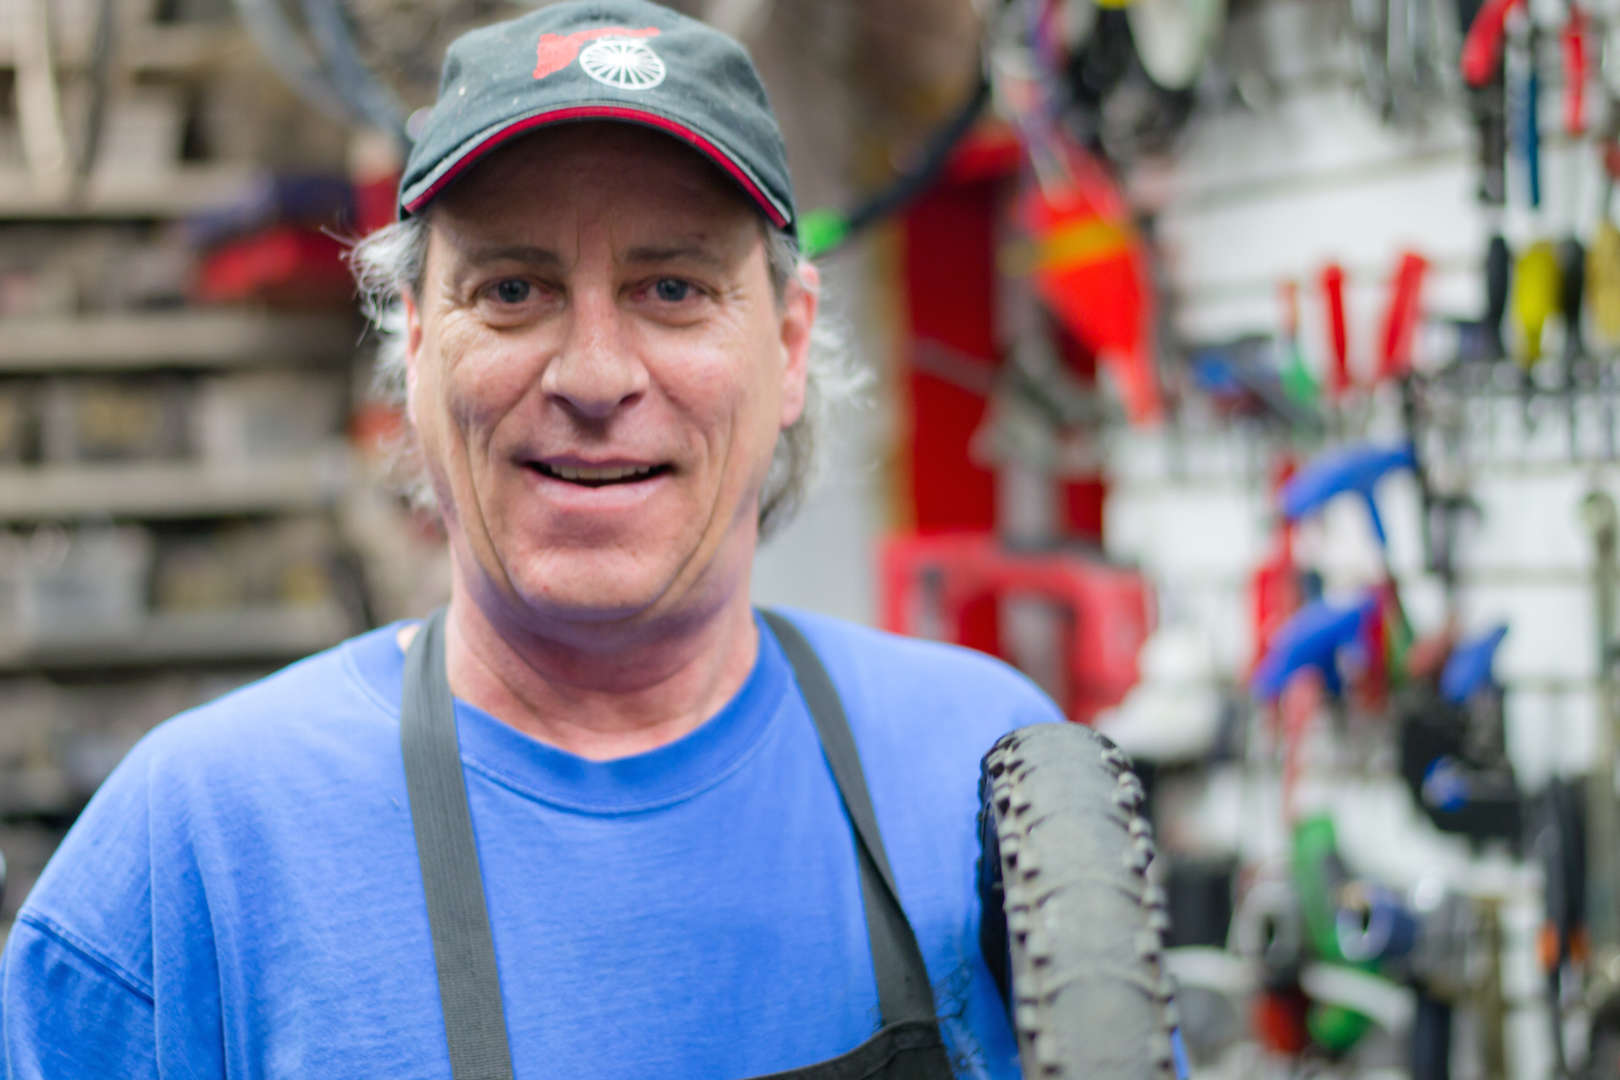 Gordy - Freewheeler Bike Shop Founder